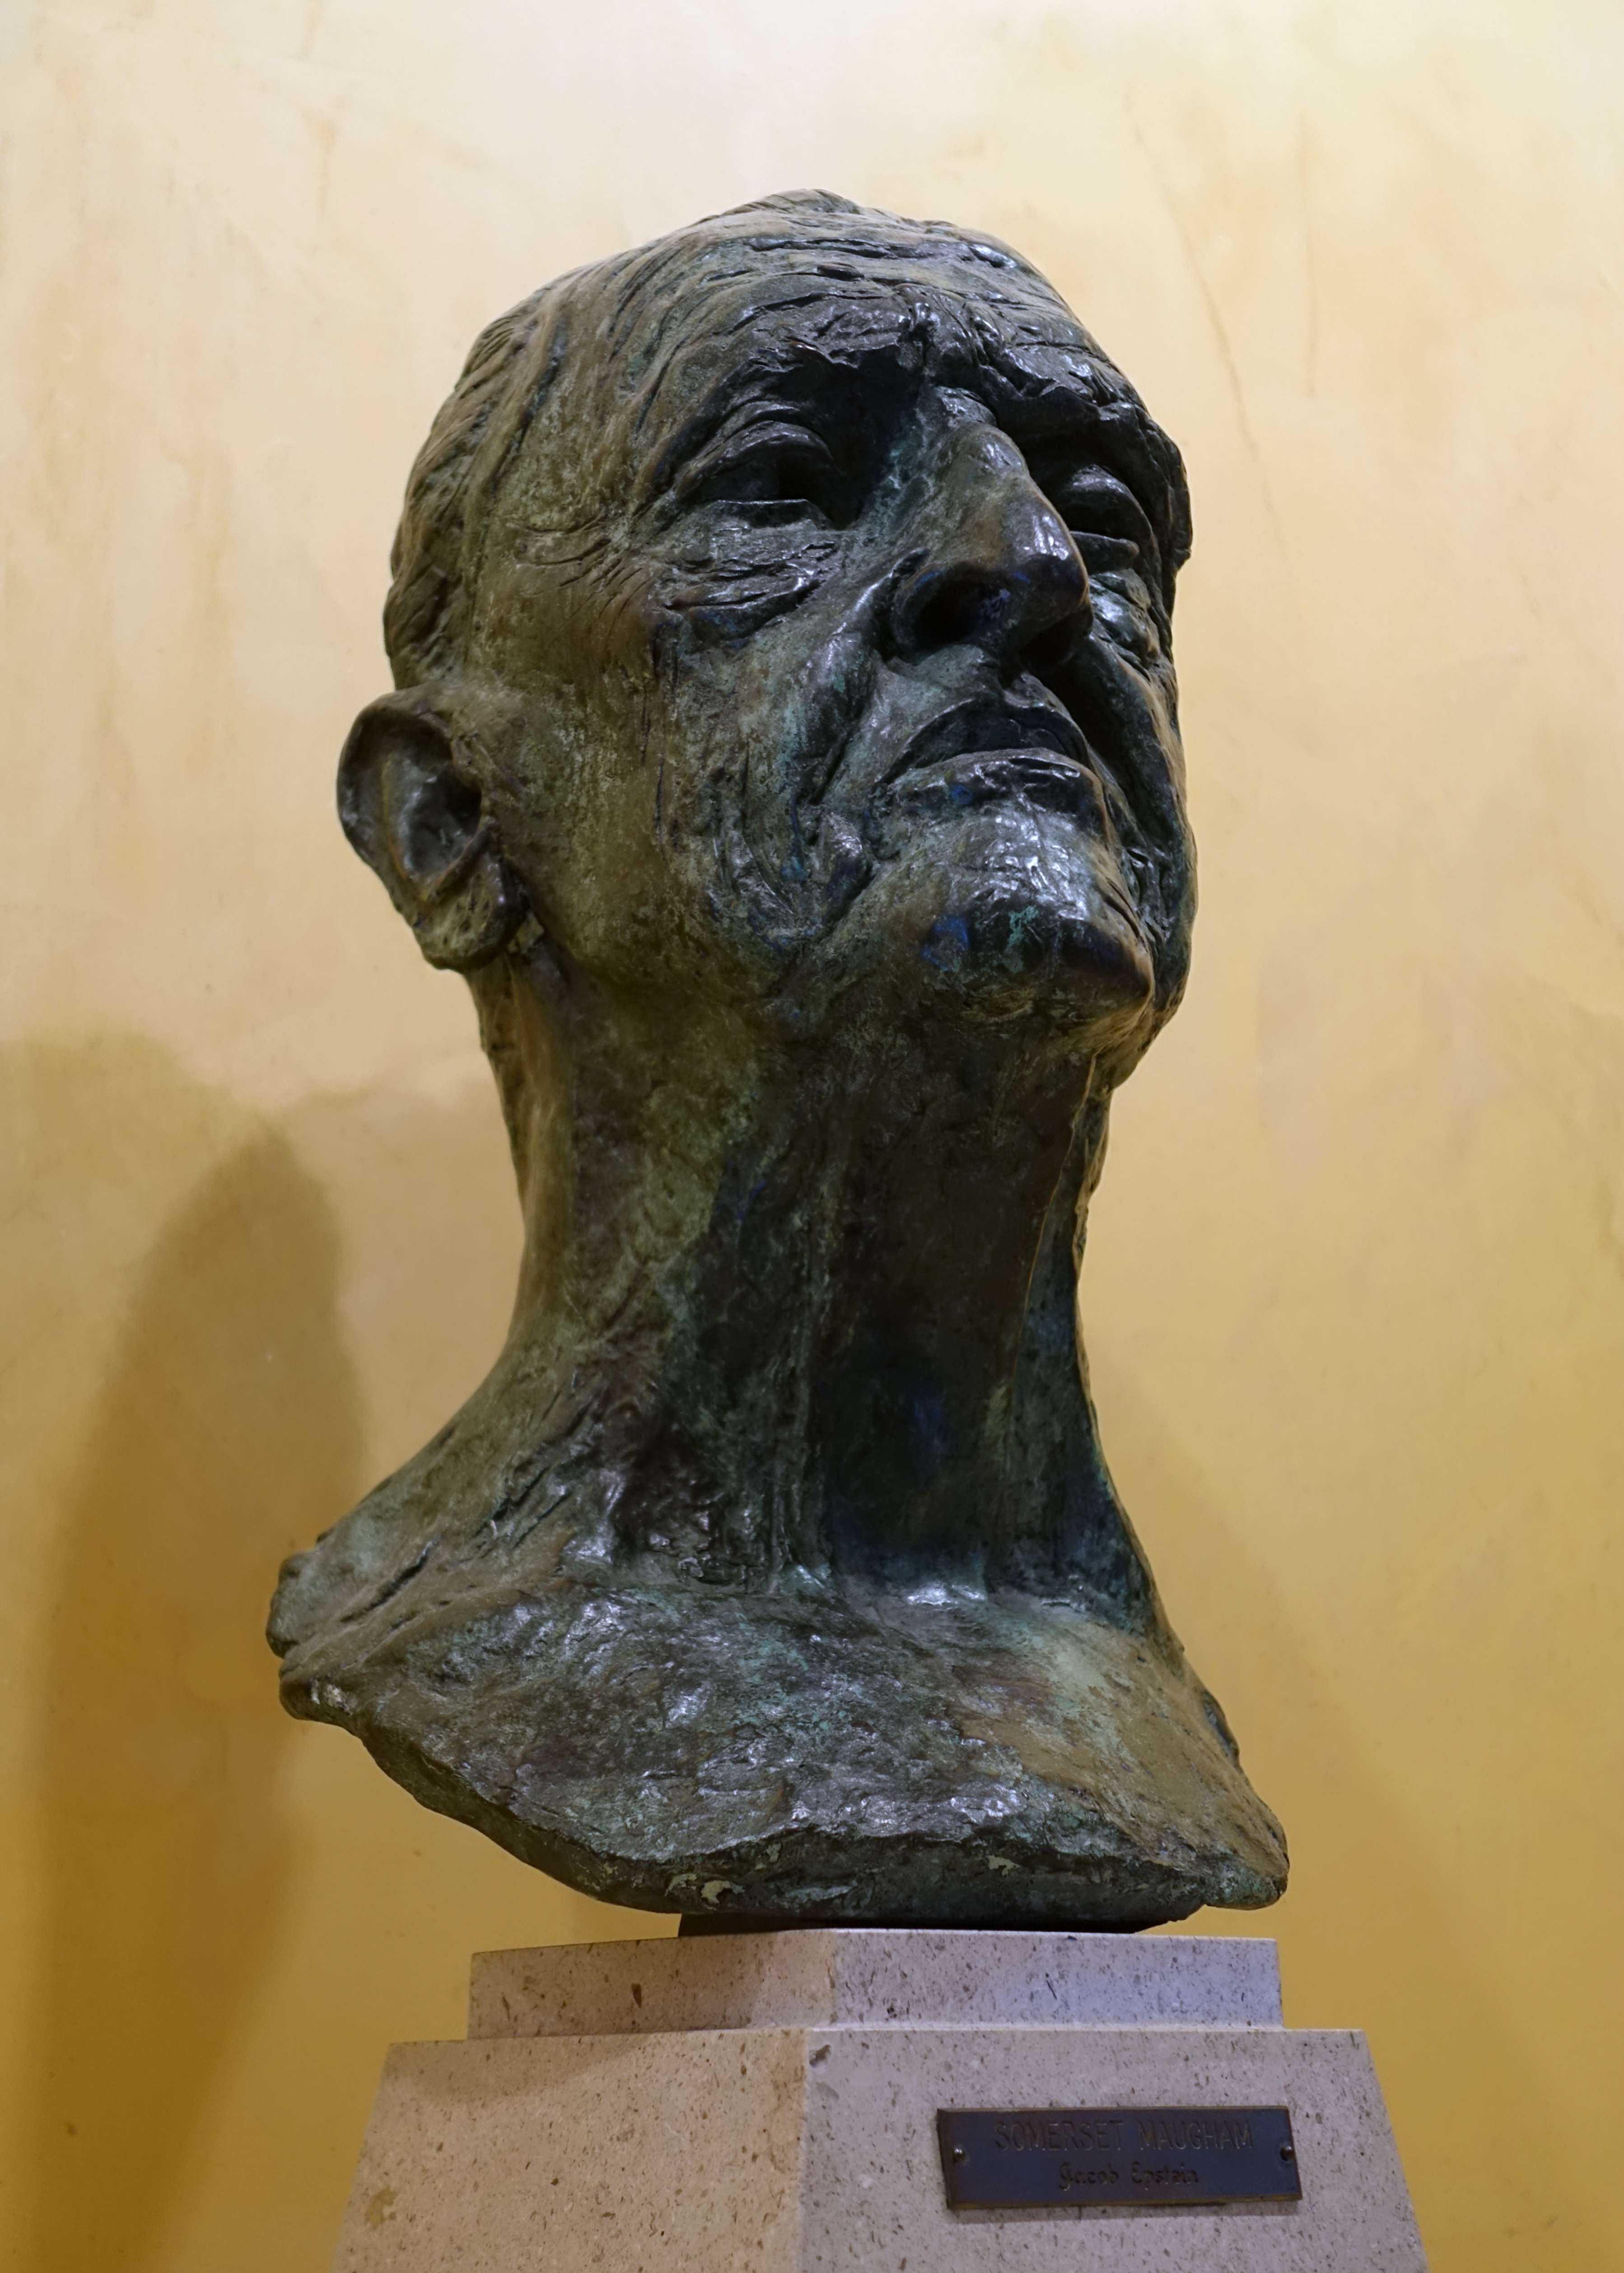 University Of Texas Organizational Chart: Somerset Maugham by Jacob Epstein 1951 bronze - Harry ,Chart